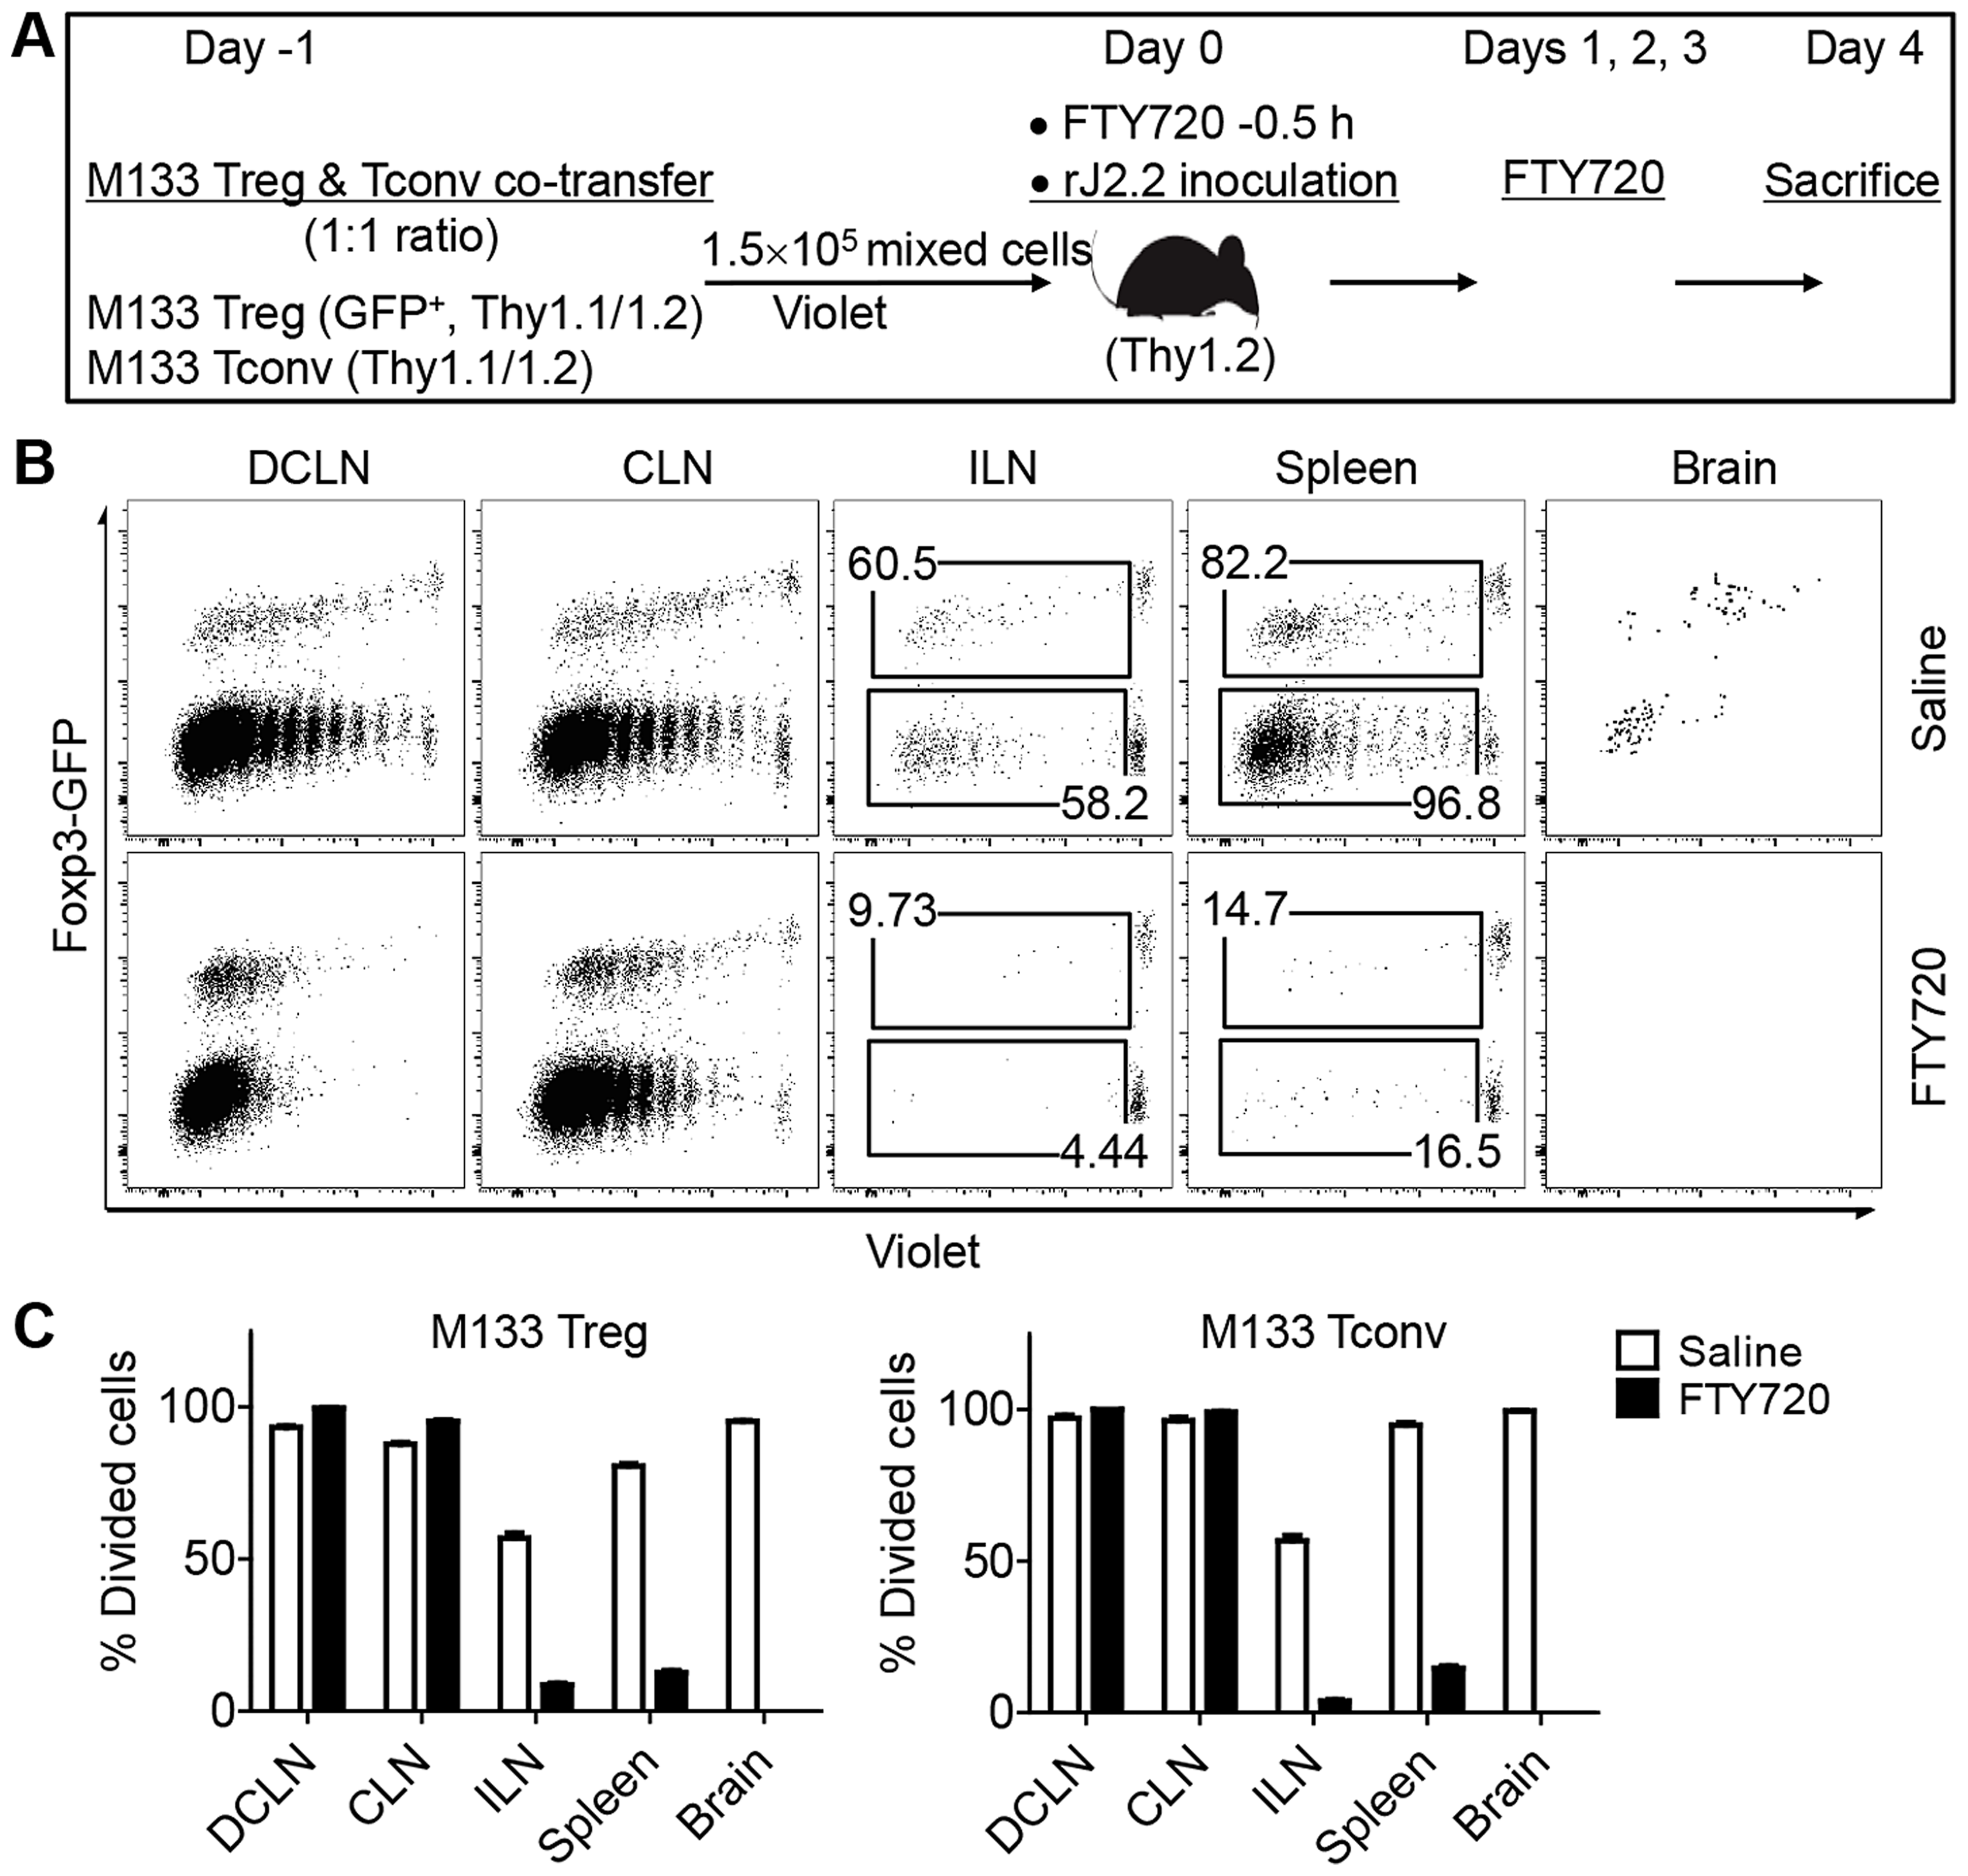 M133 Tconv and Treg proliferation occurs in DCLN and CLN after FTY720 treatment.